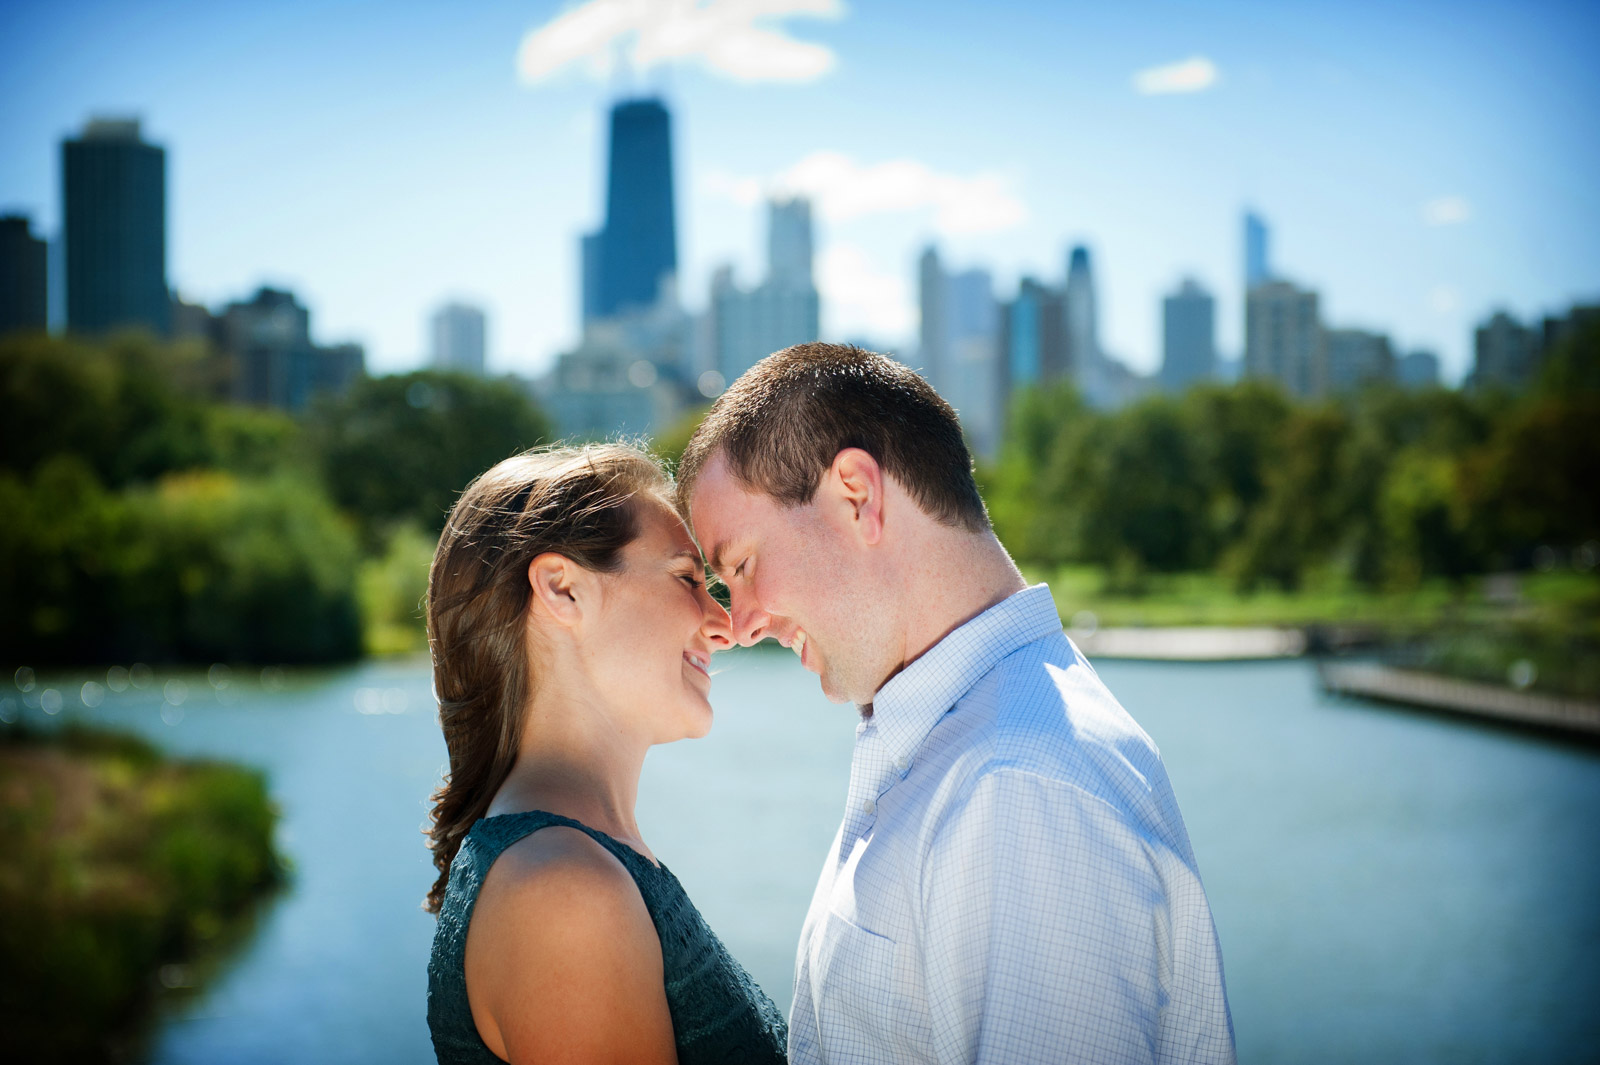 Smiling happy engagement session couple on bridge at the South Pond of Lincoln Park Zoo